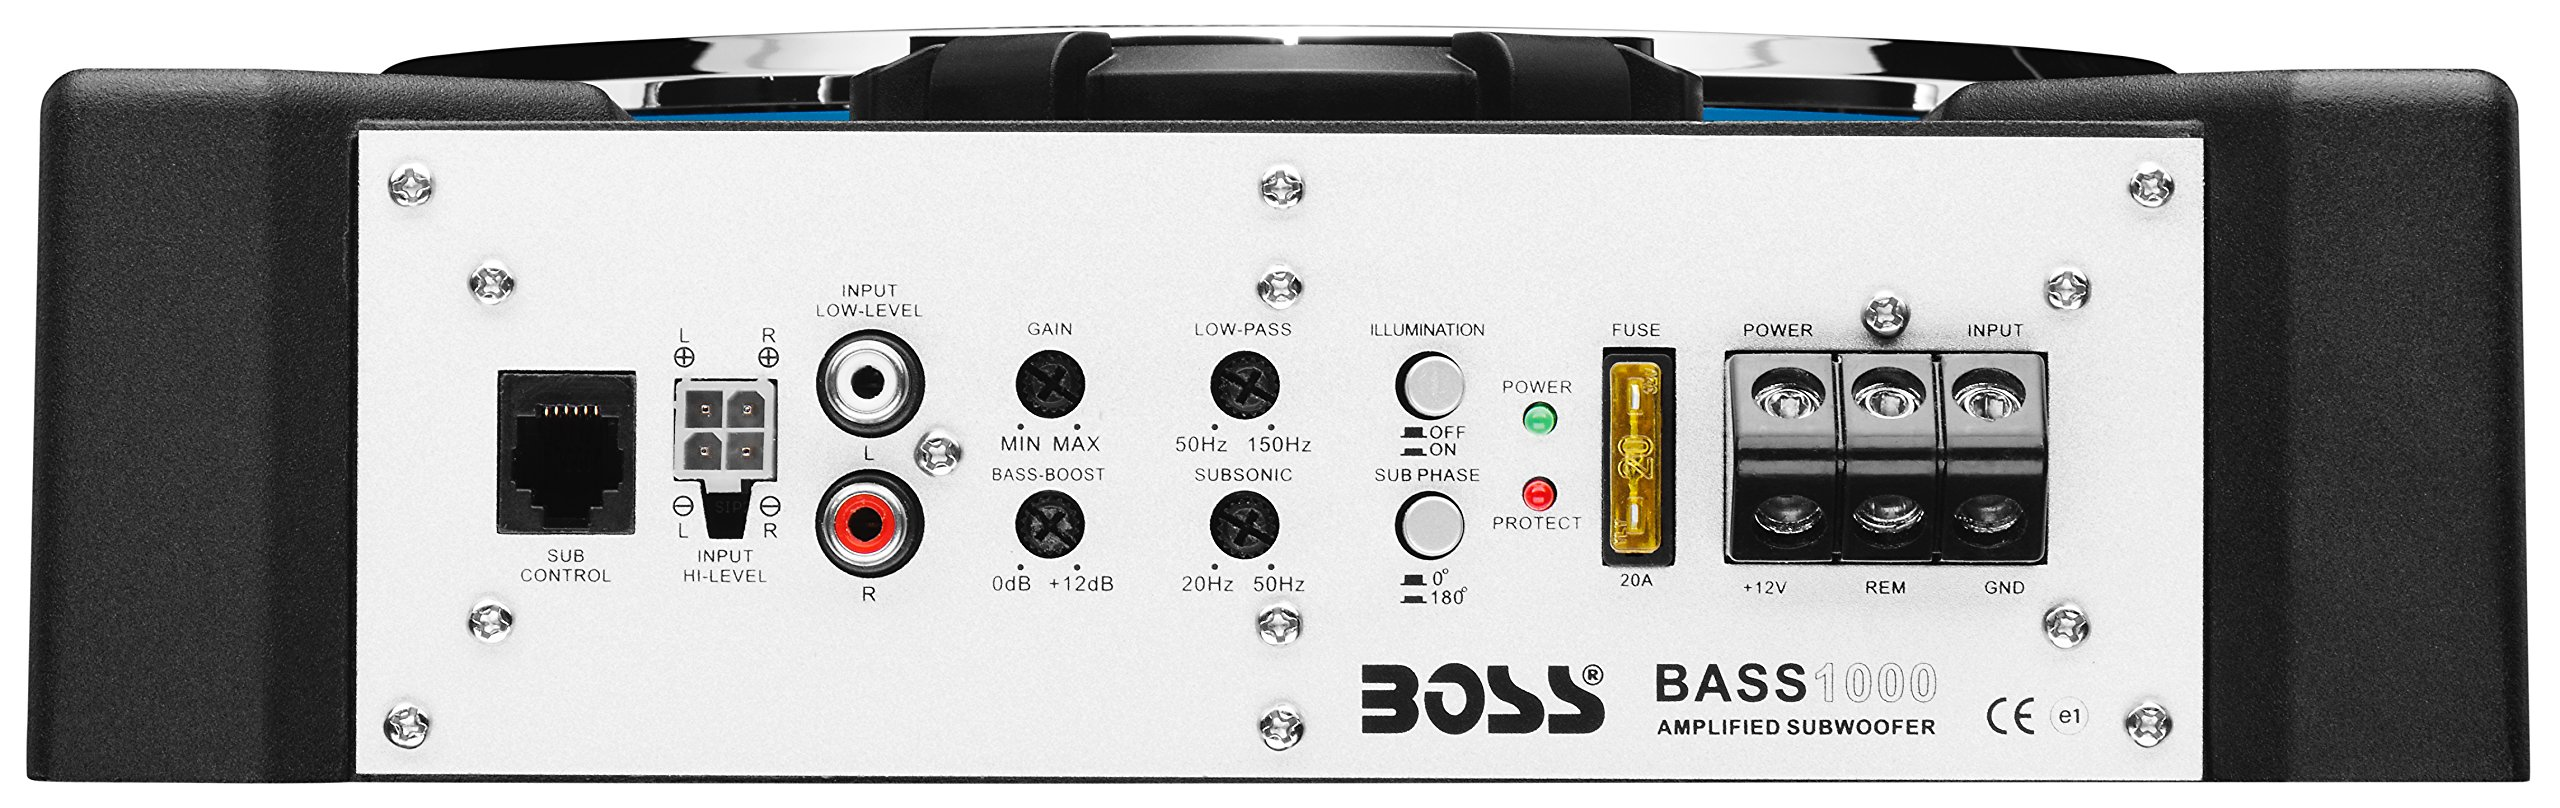 BOSS Audio BASS1000 1000 Watt Low Profile Amplified 8 Inch Subwoofer with Remote Subwoofer Control by BOSS Audio (Image #4)